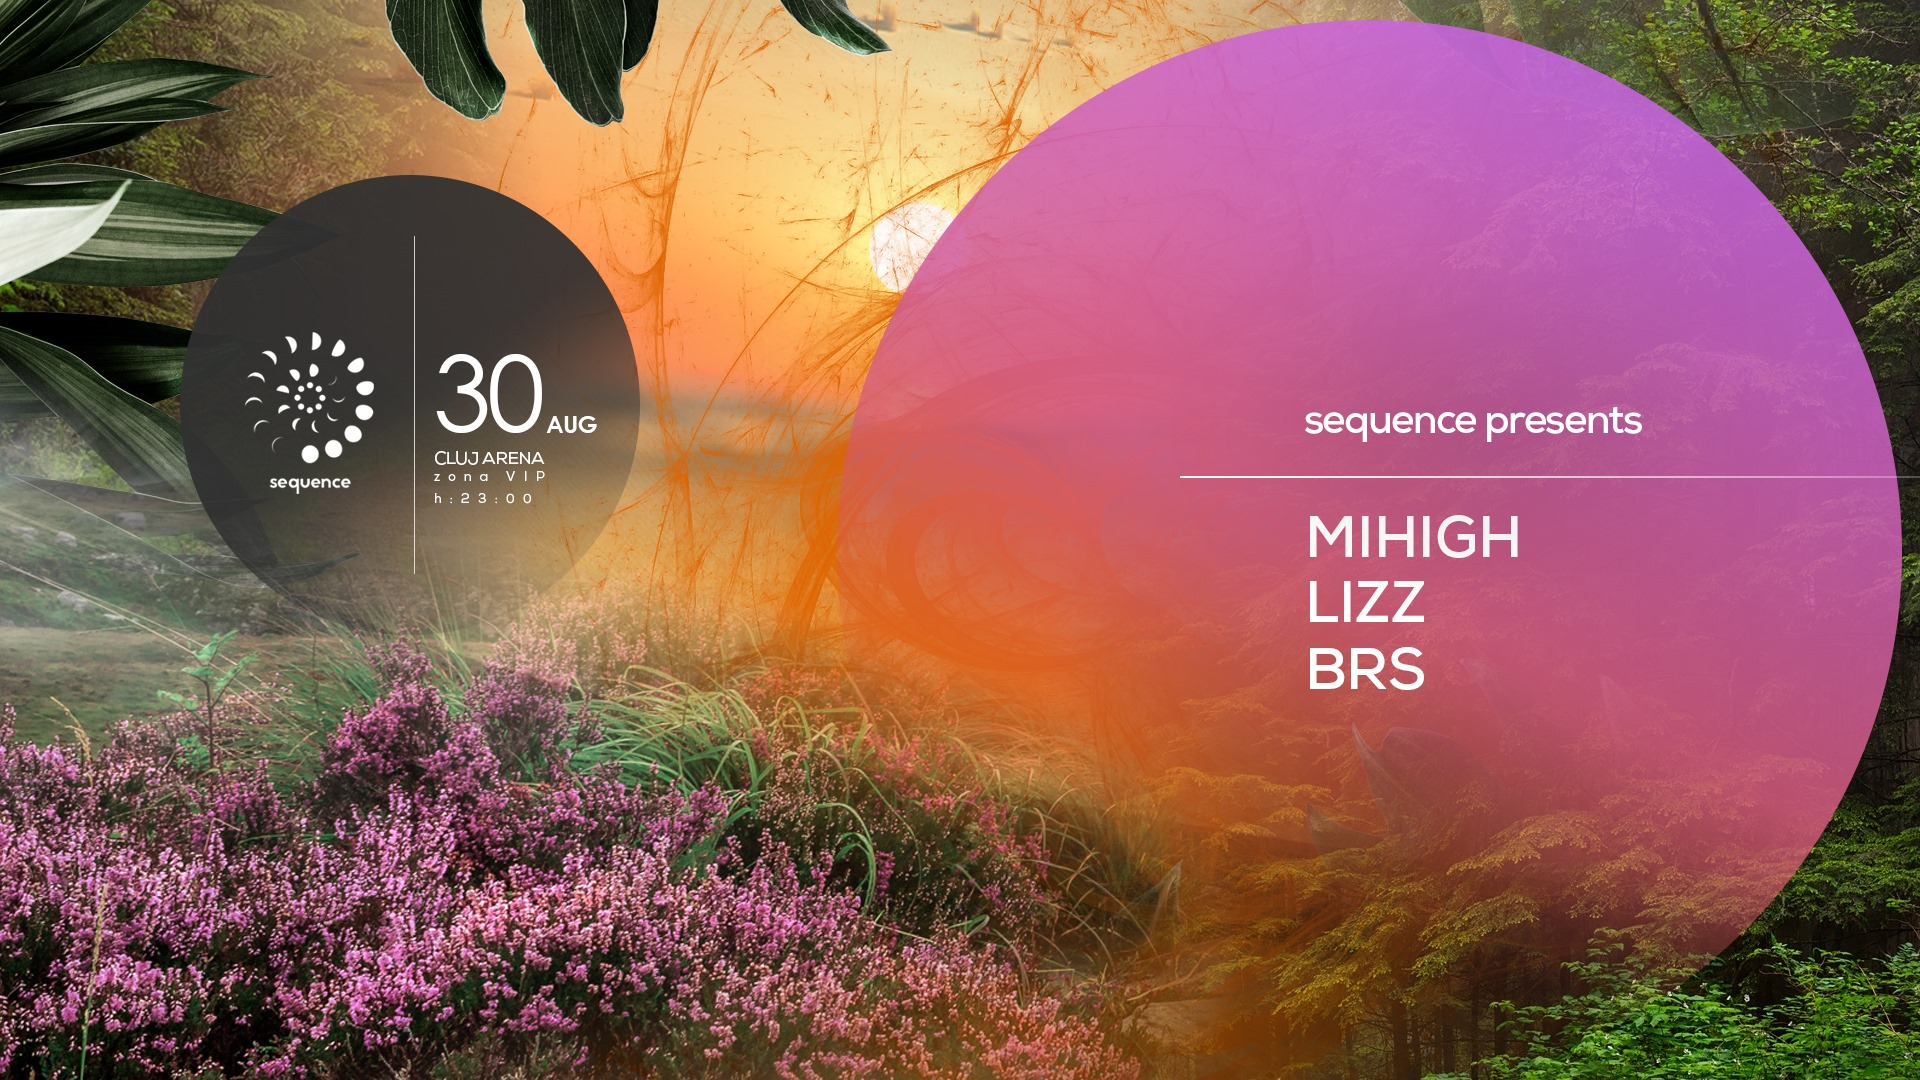 Sequence pres. Mihigh / Lizz / Brs